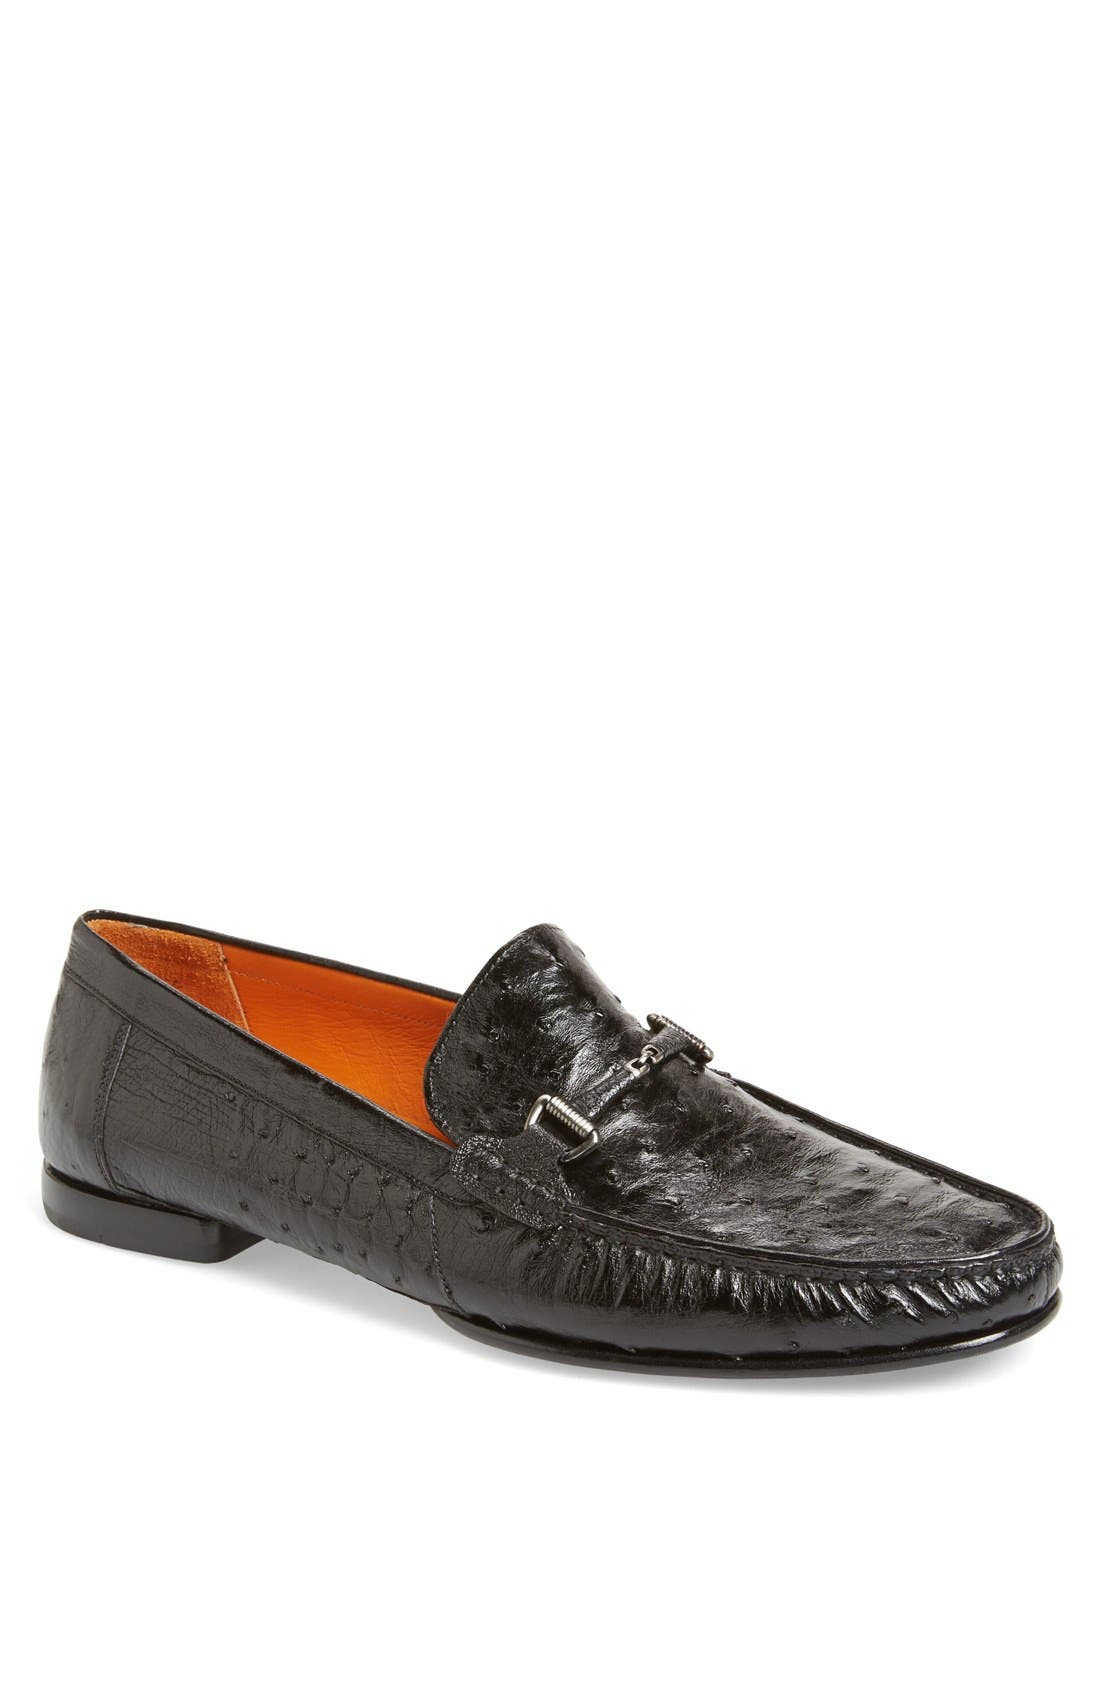 'Vittorio' Ostrich Leather Bit Loafer,                             Main thumbnail 1, color,                             BLACK